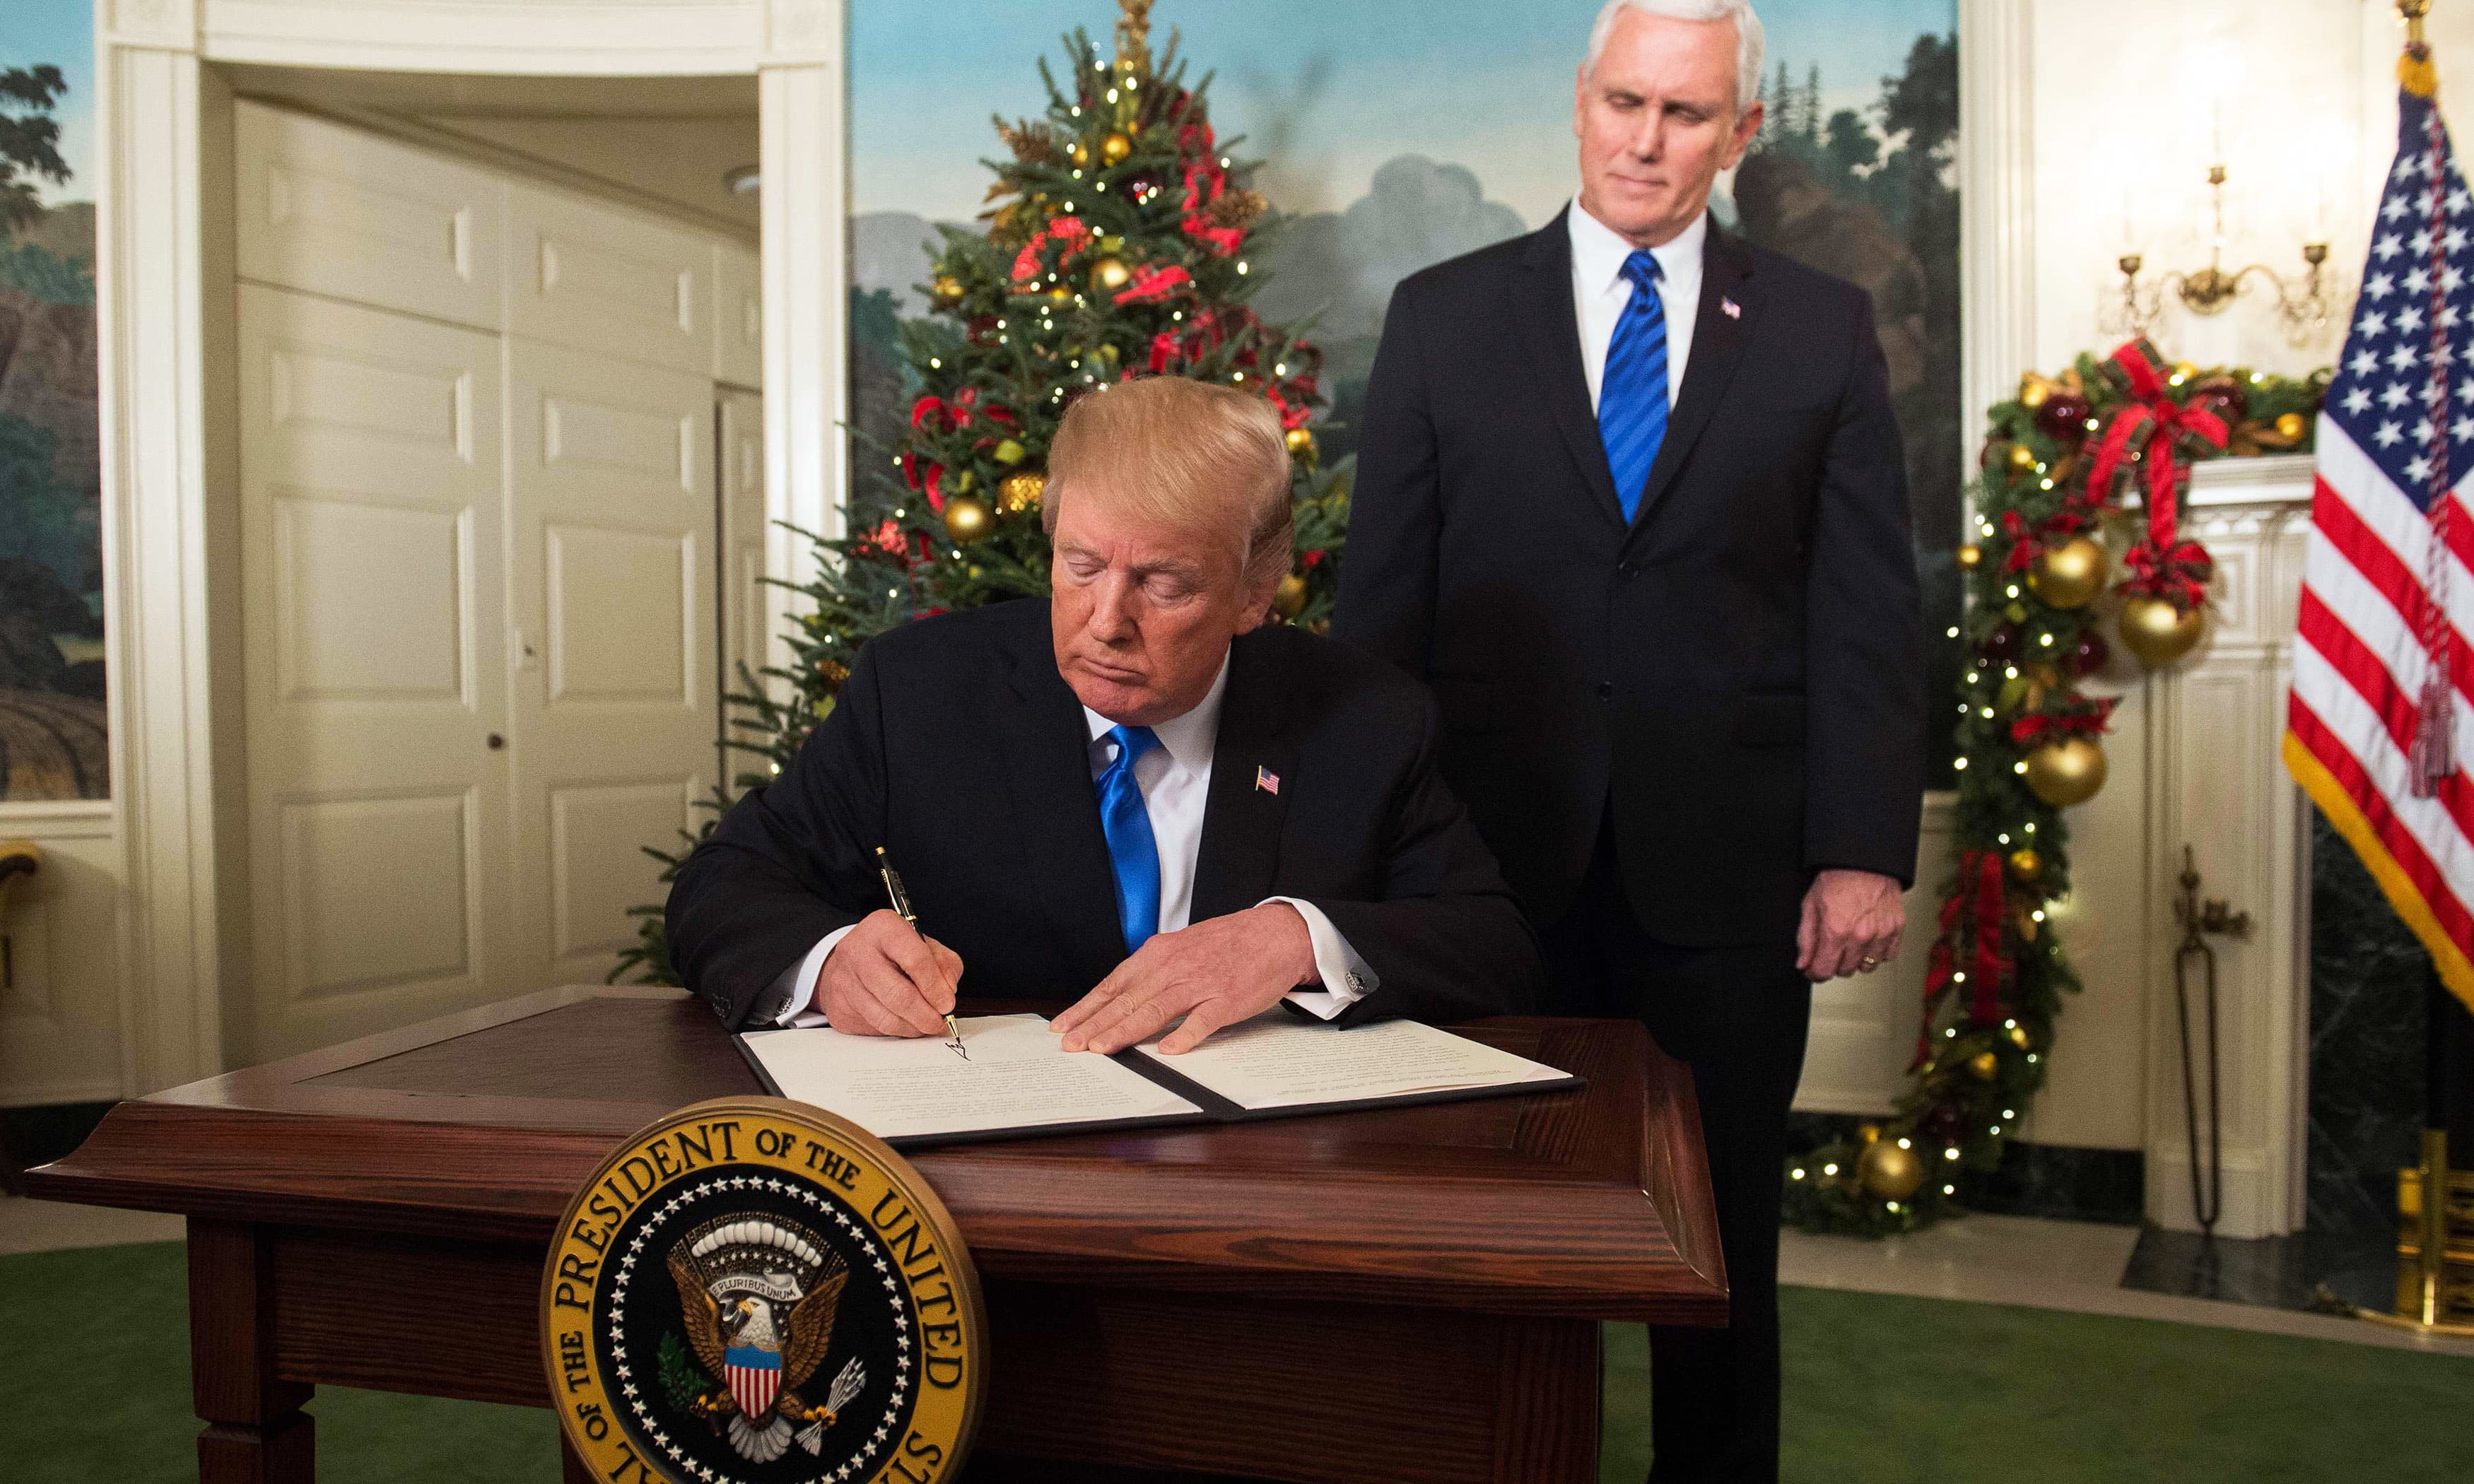 Trump signs a memorandum after he delivered a statement on Jerusalem. —AFP